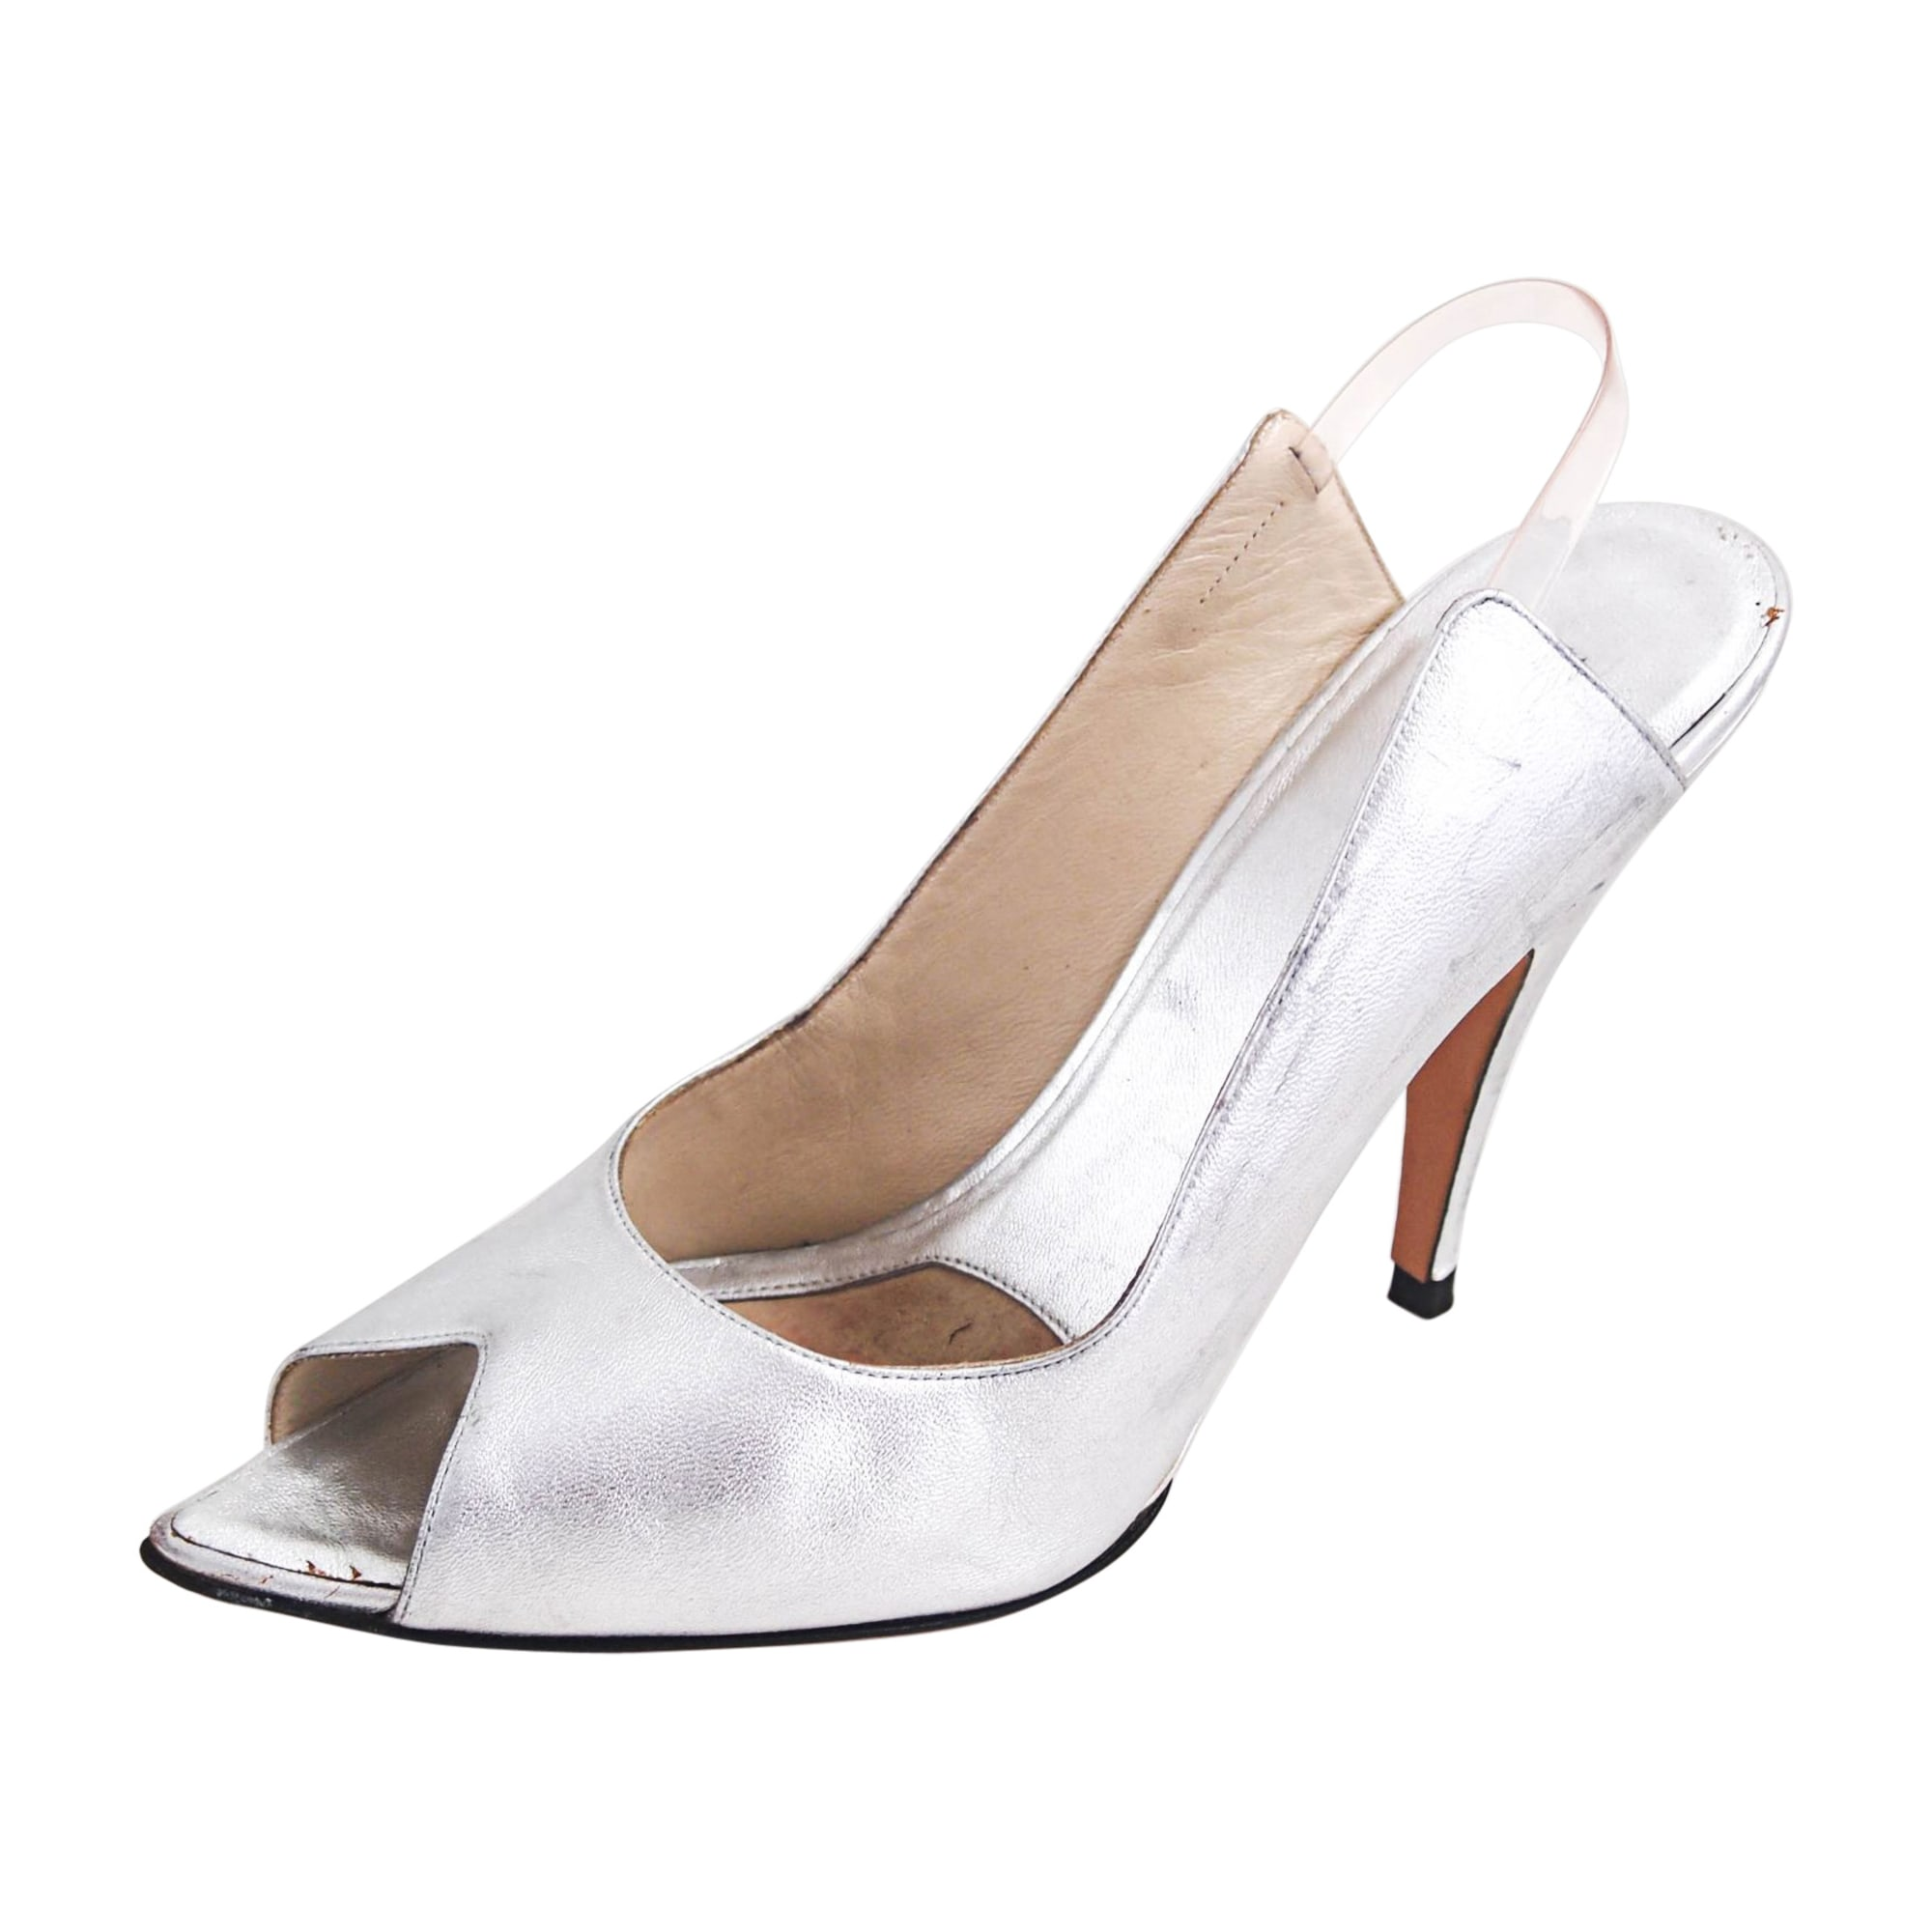 Heeled Sandals GUCCI Silver